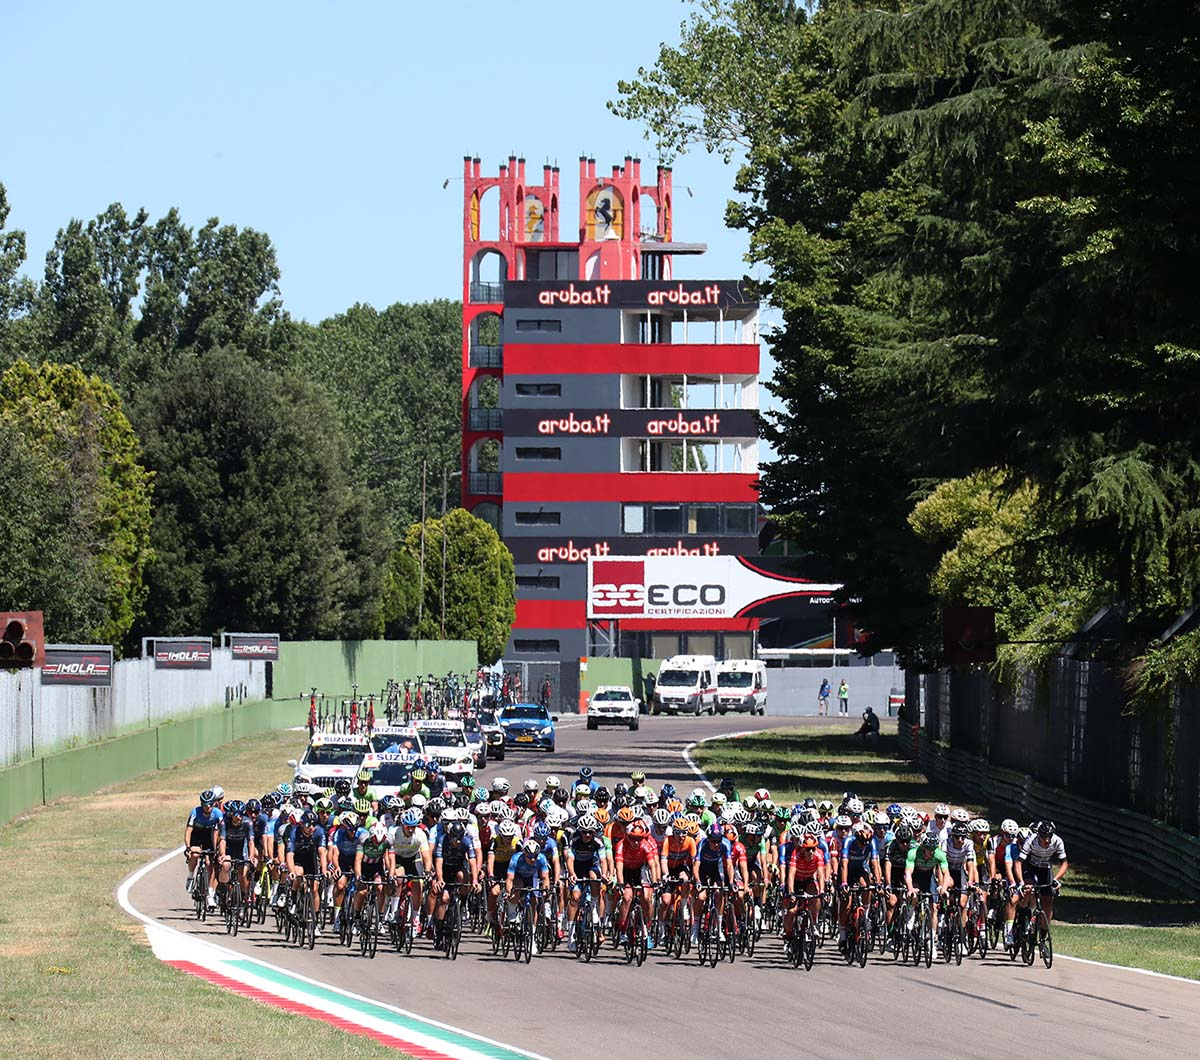 Un momento di gara Elite e Under 23 all'Autodromo di Imola